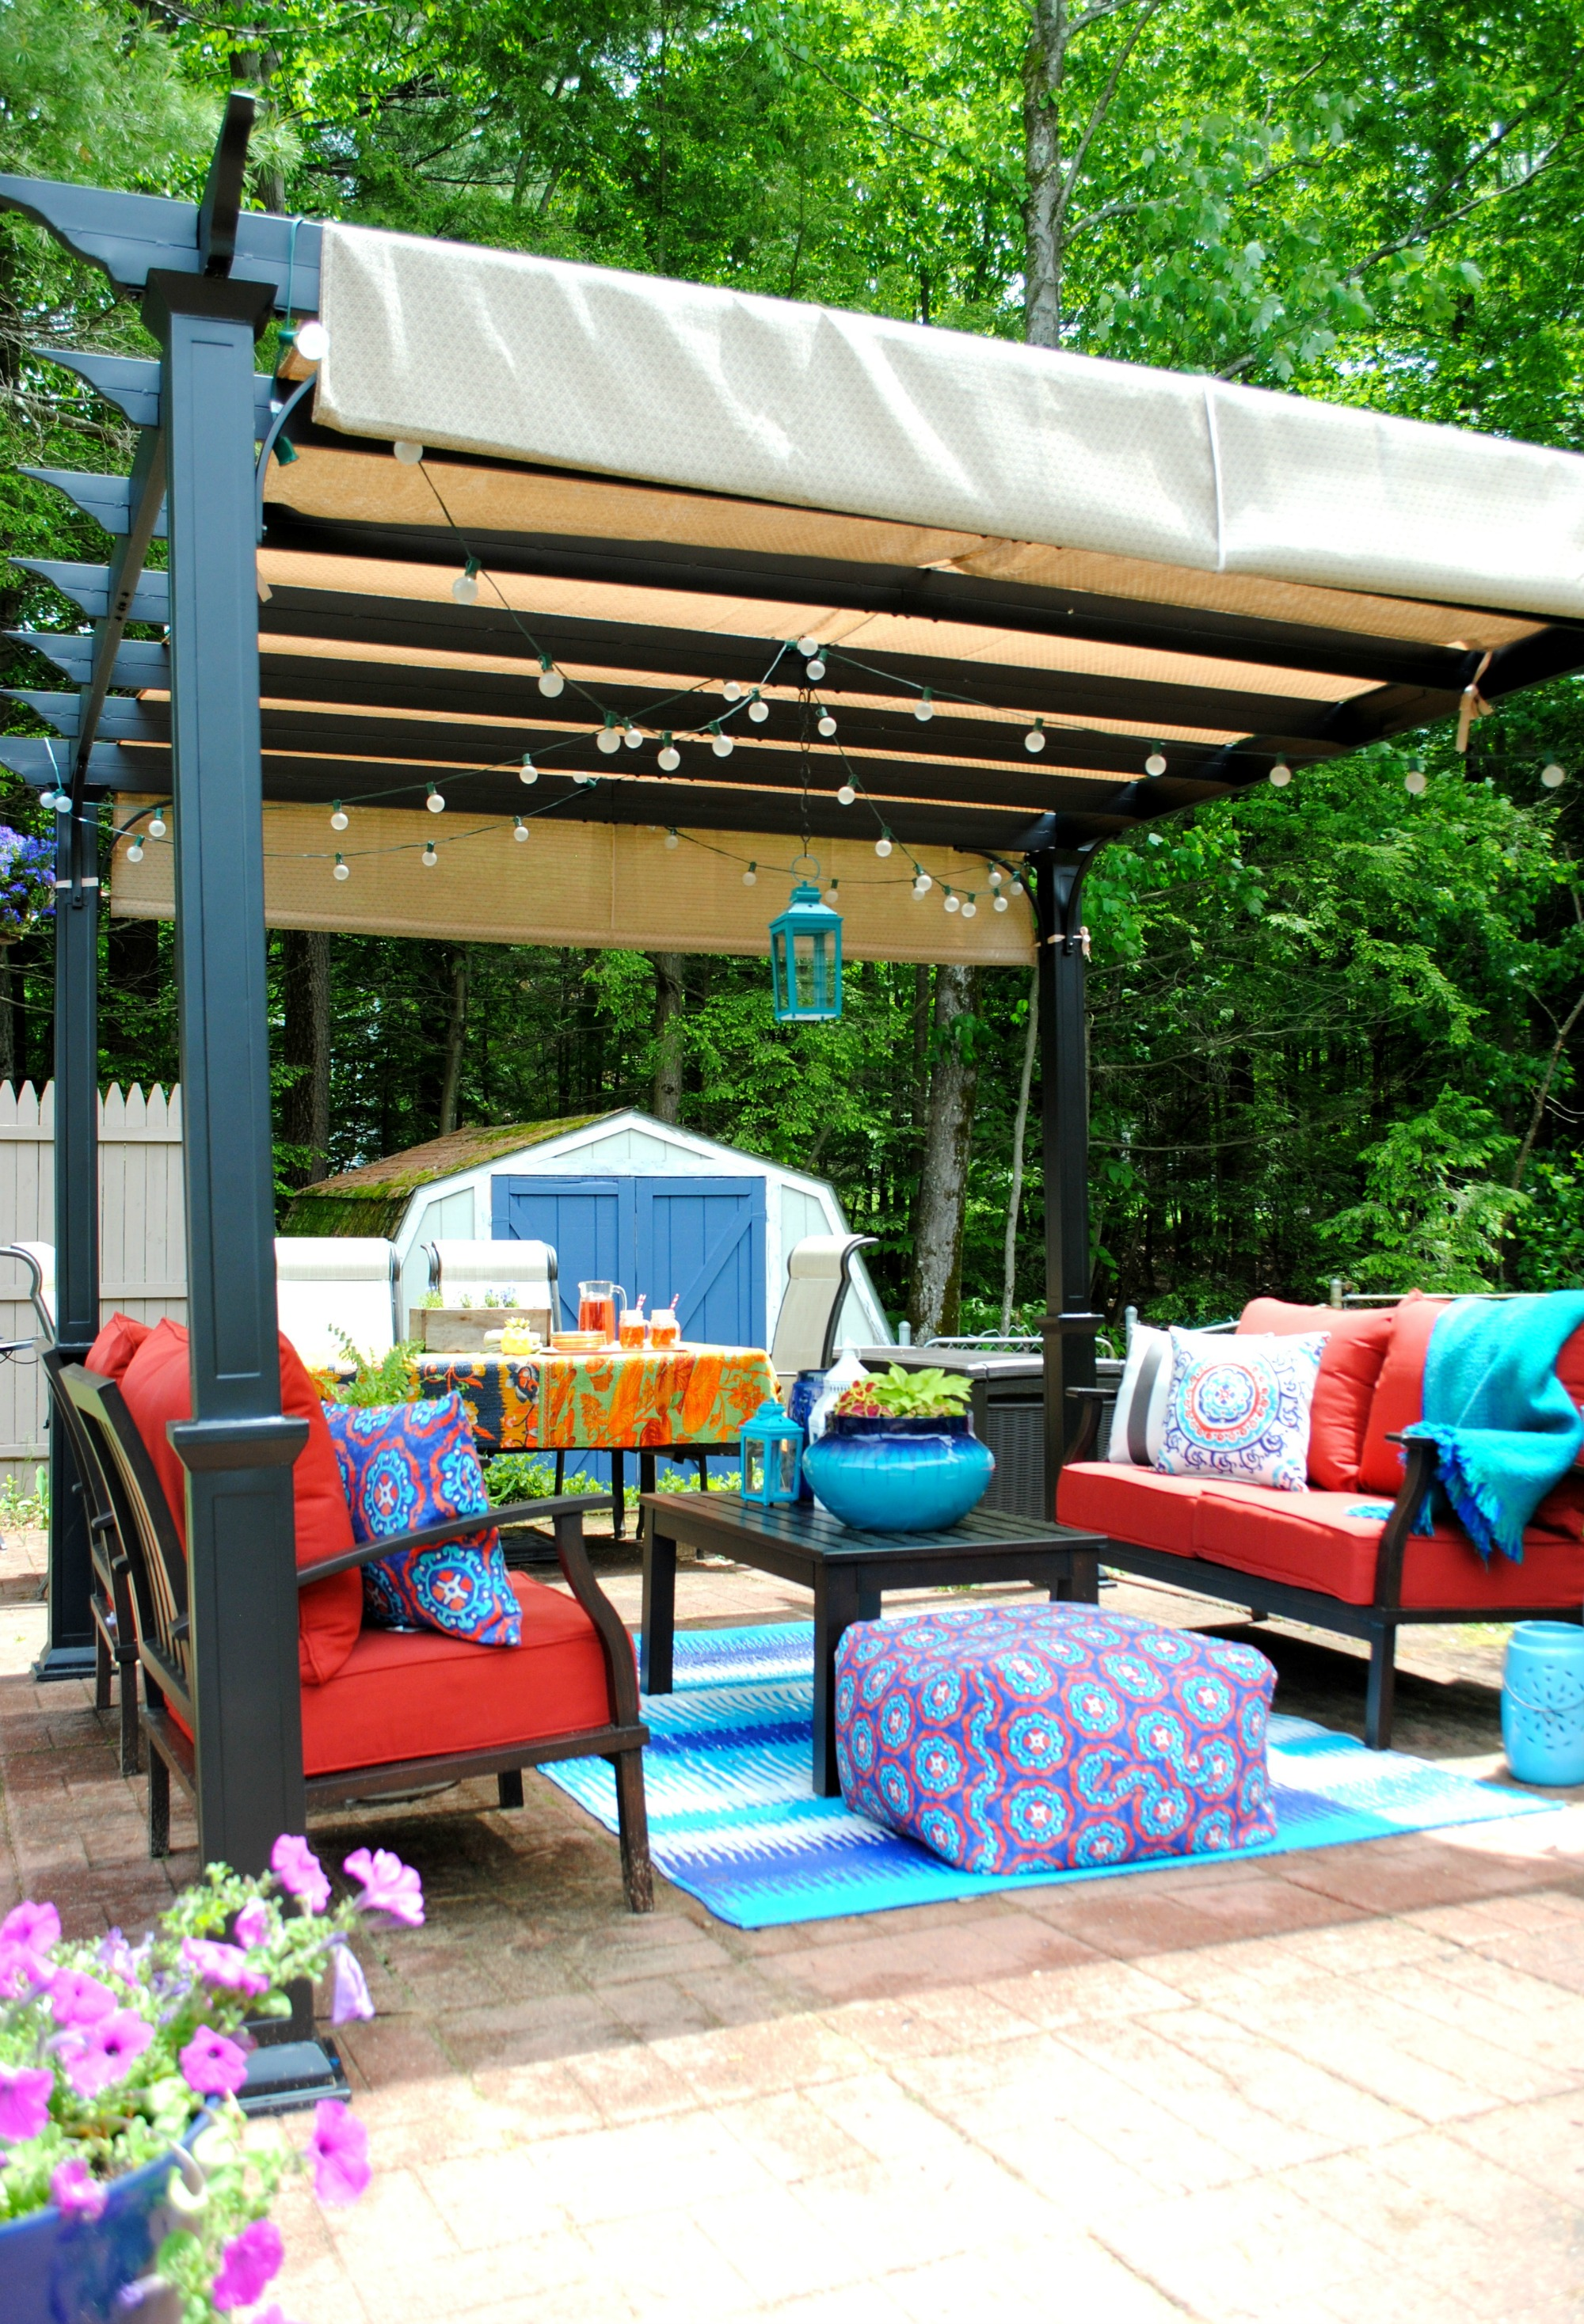 Creating an Outdoor Living Space - Jenna Burger Design LLC on Garden Living Space id=84585